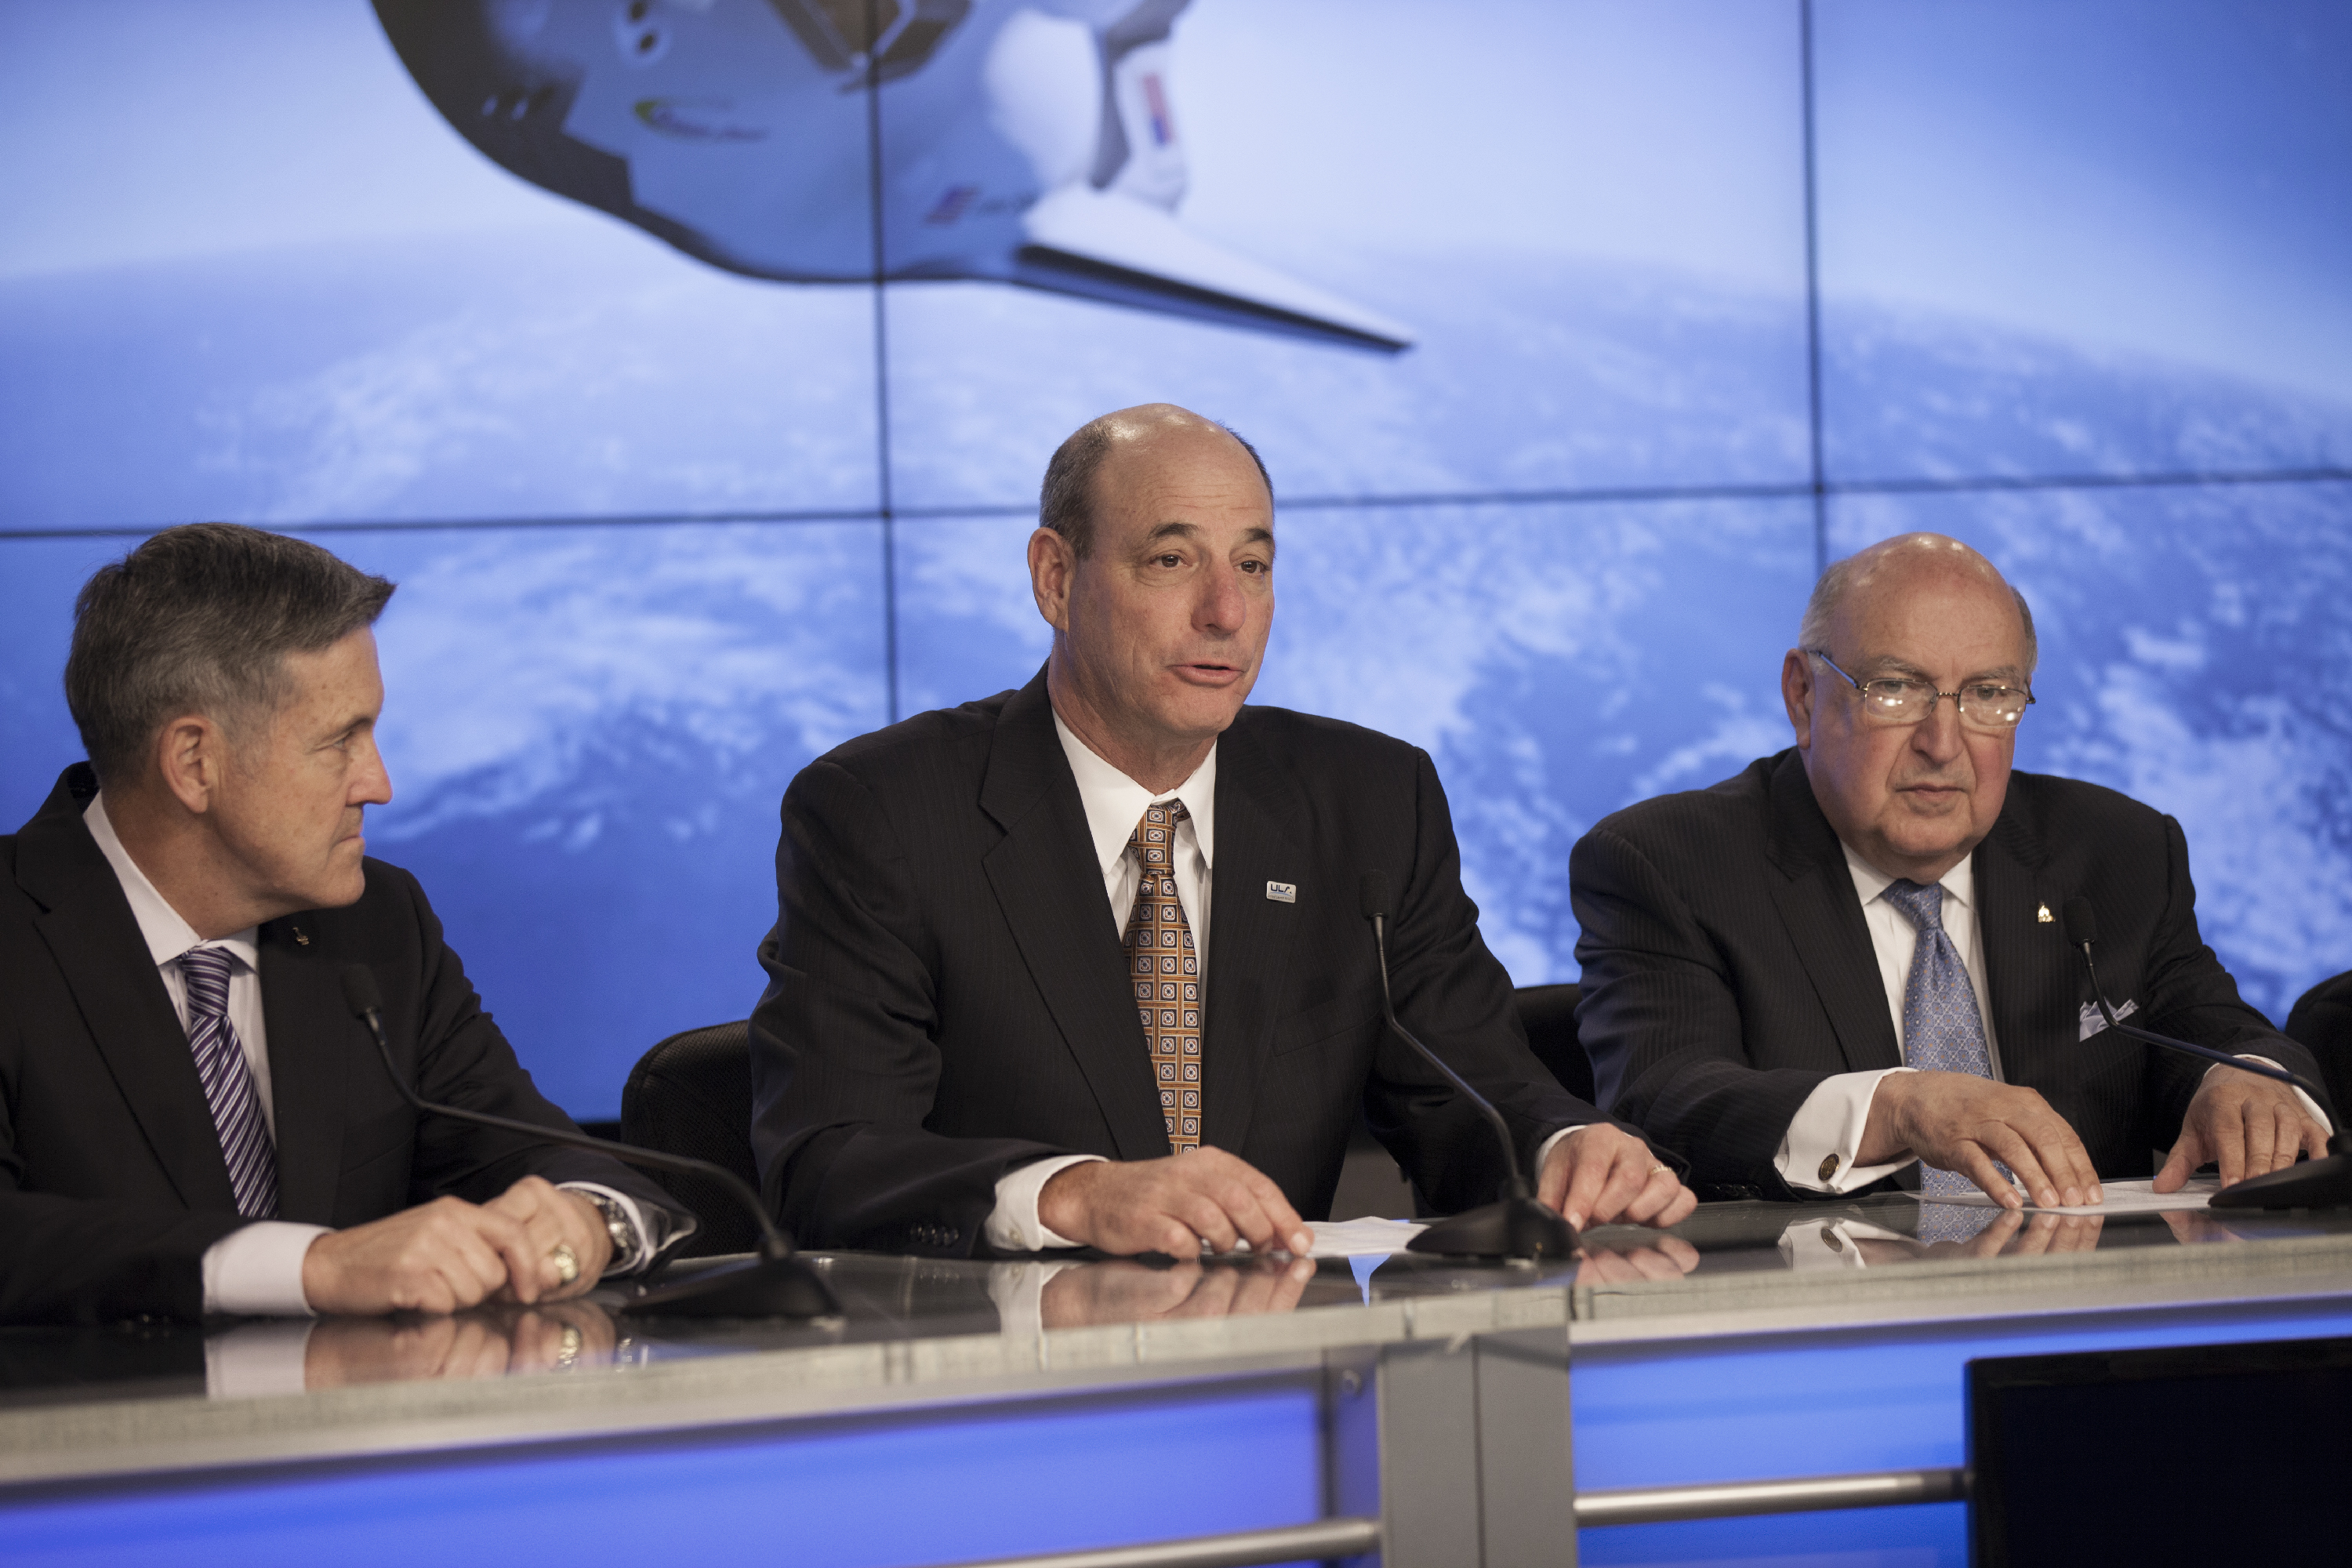 Michael Gass, president and CEO of United Launch Alliance, or ULA, joins Sierra Nevada Corporation, or SNC, Space Systems, as the company announces the steps it will take to prepare for a November 2016 orbital flight of its Dream Chaser spacecraft from Florida's Space Coast. Photo credit: NASA/Kim Shiflett